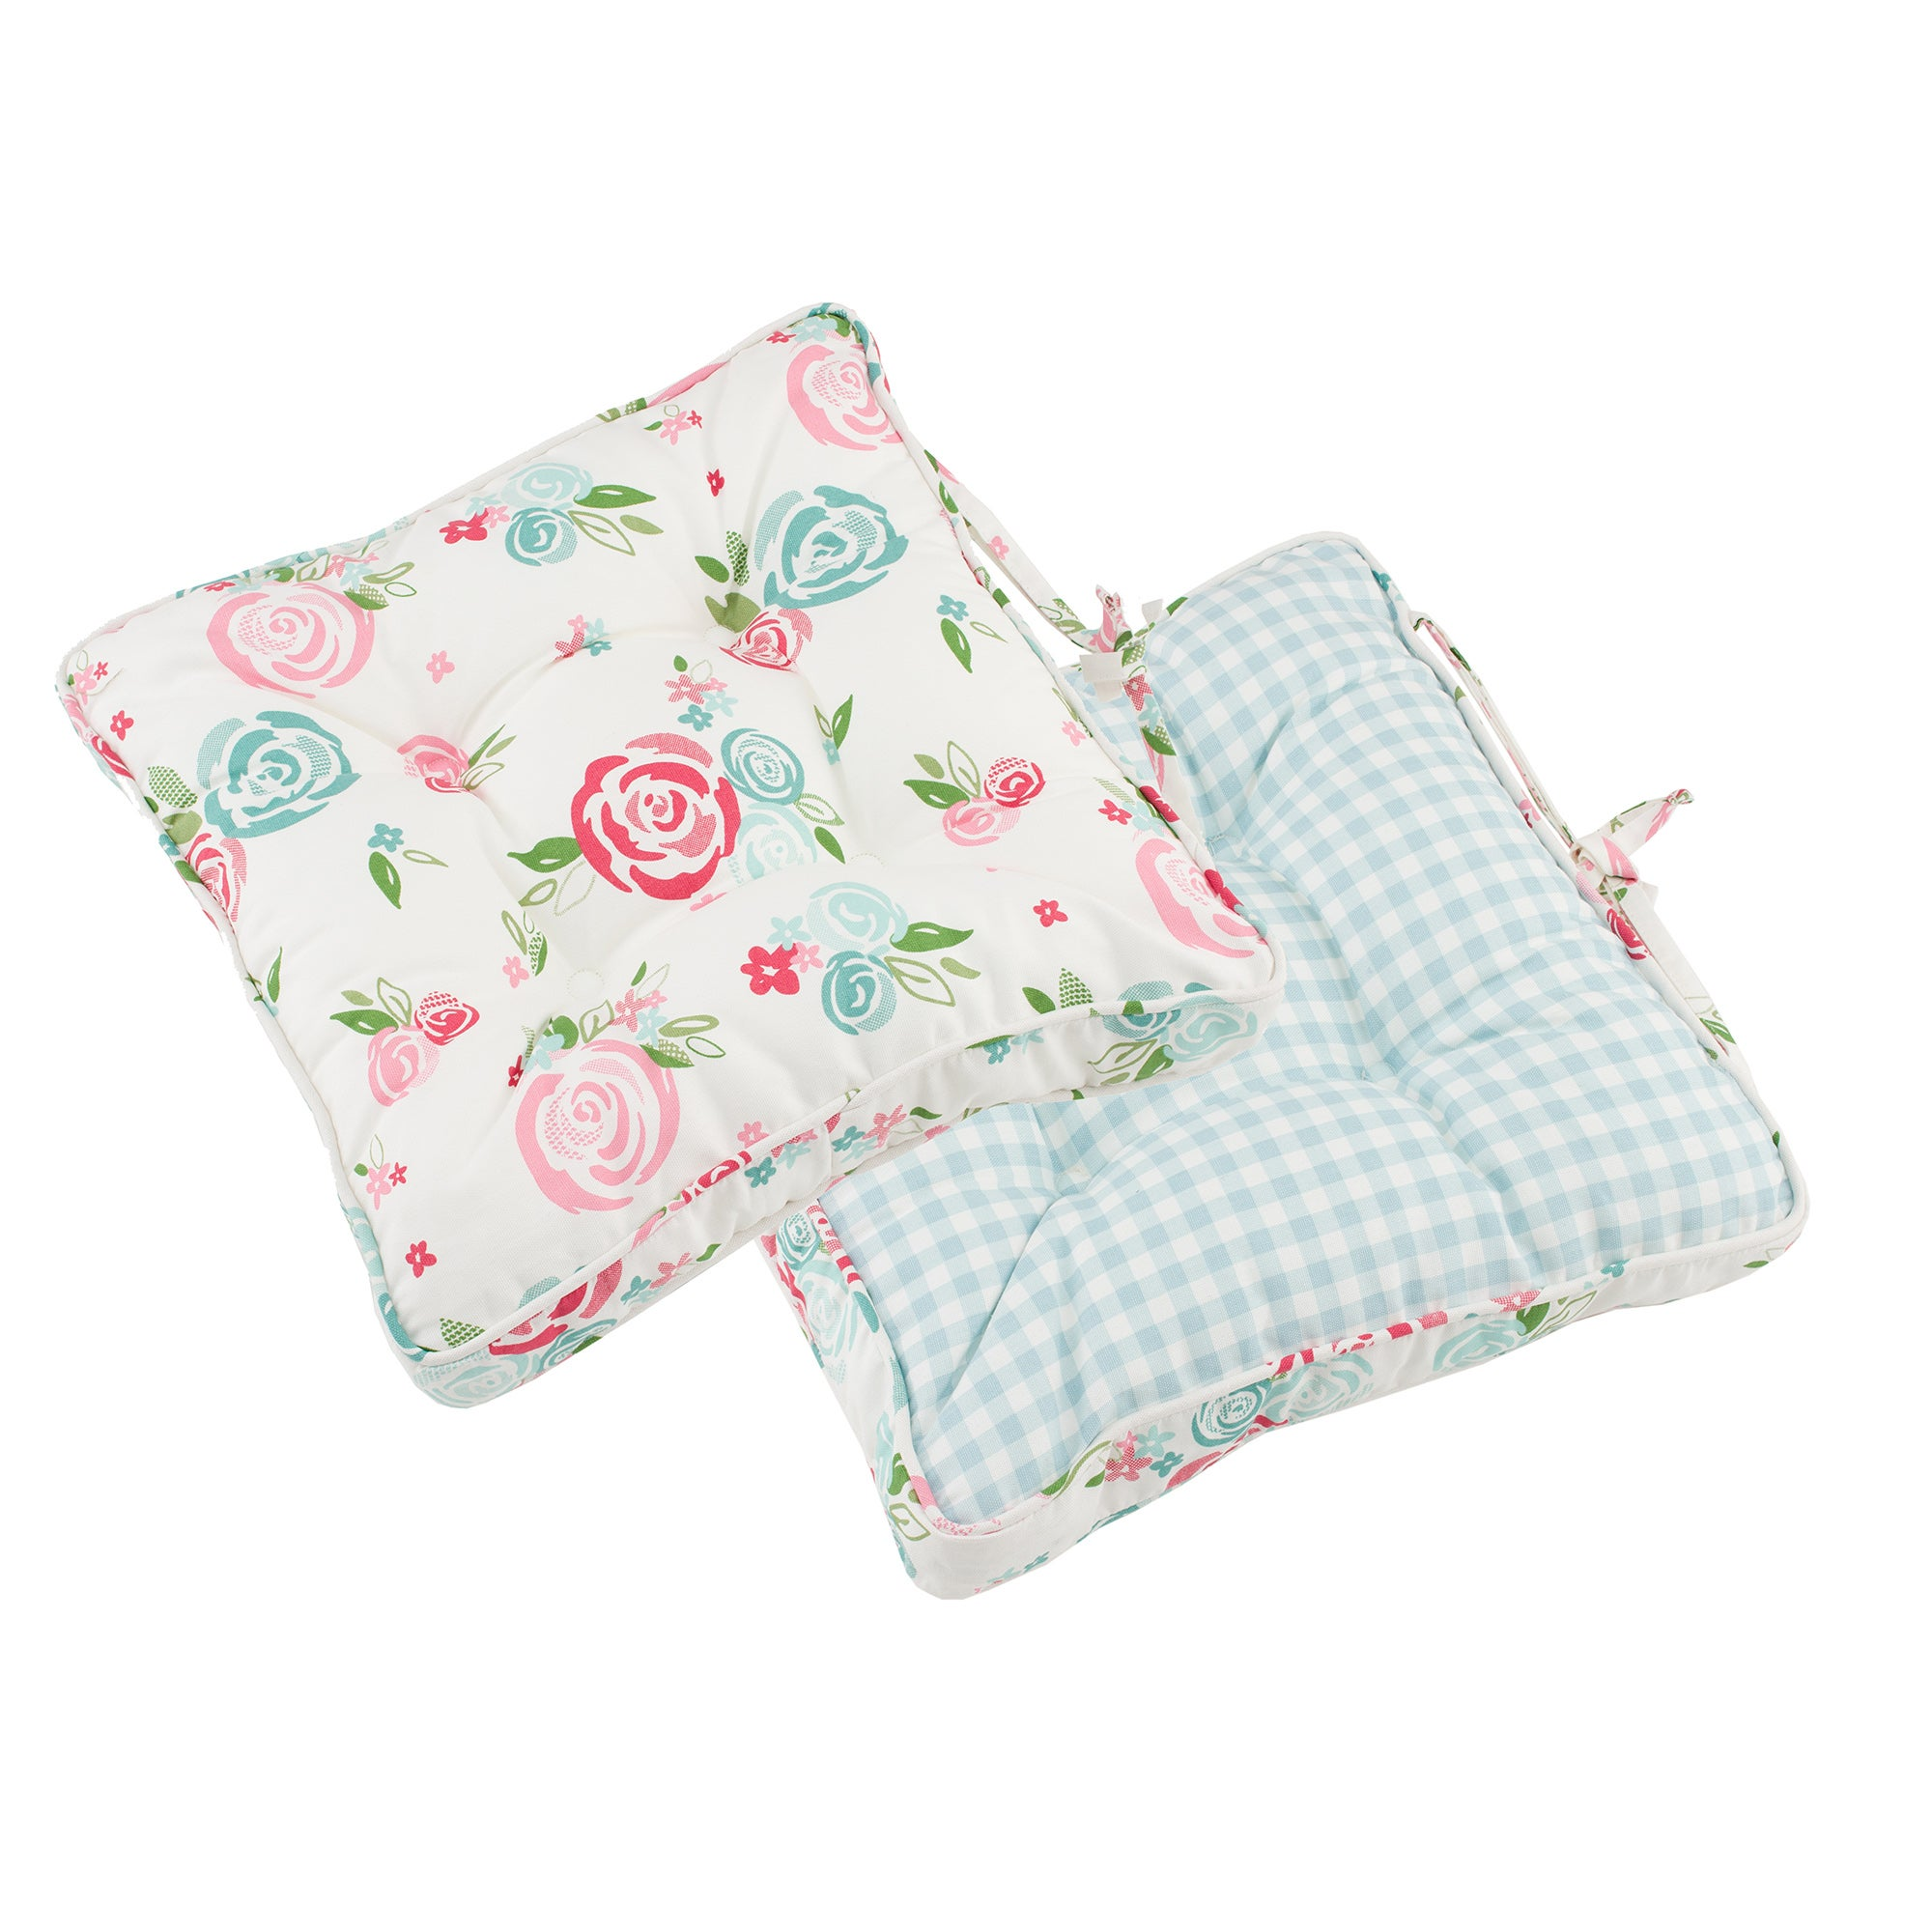 Candy Rose Collection Seat Pad